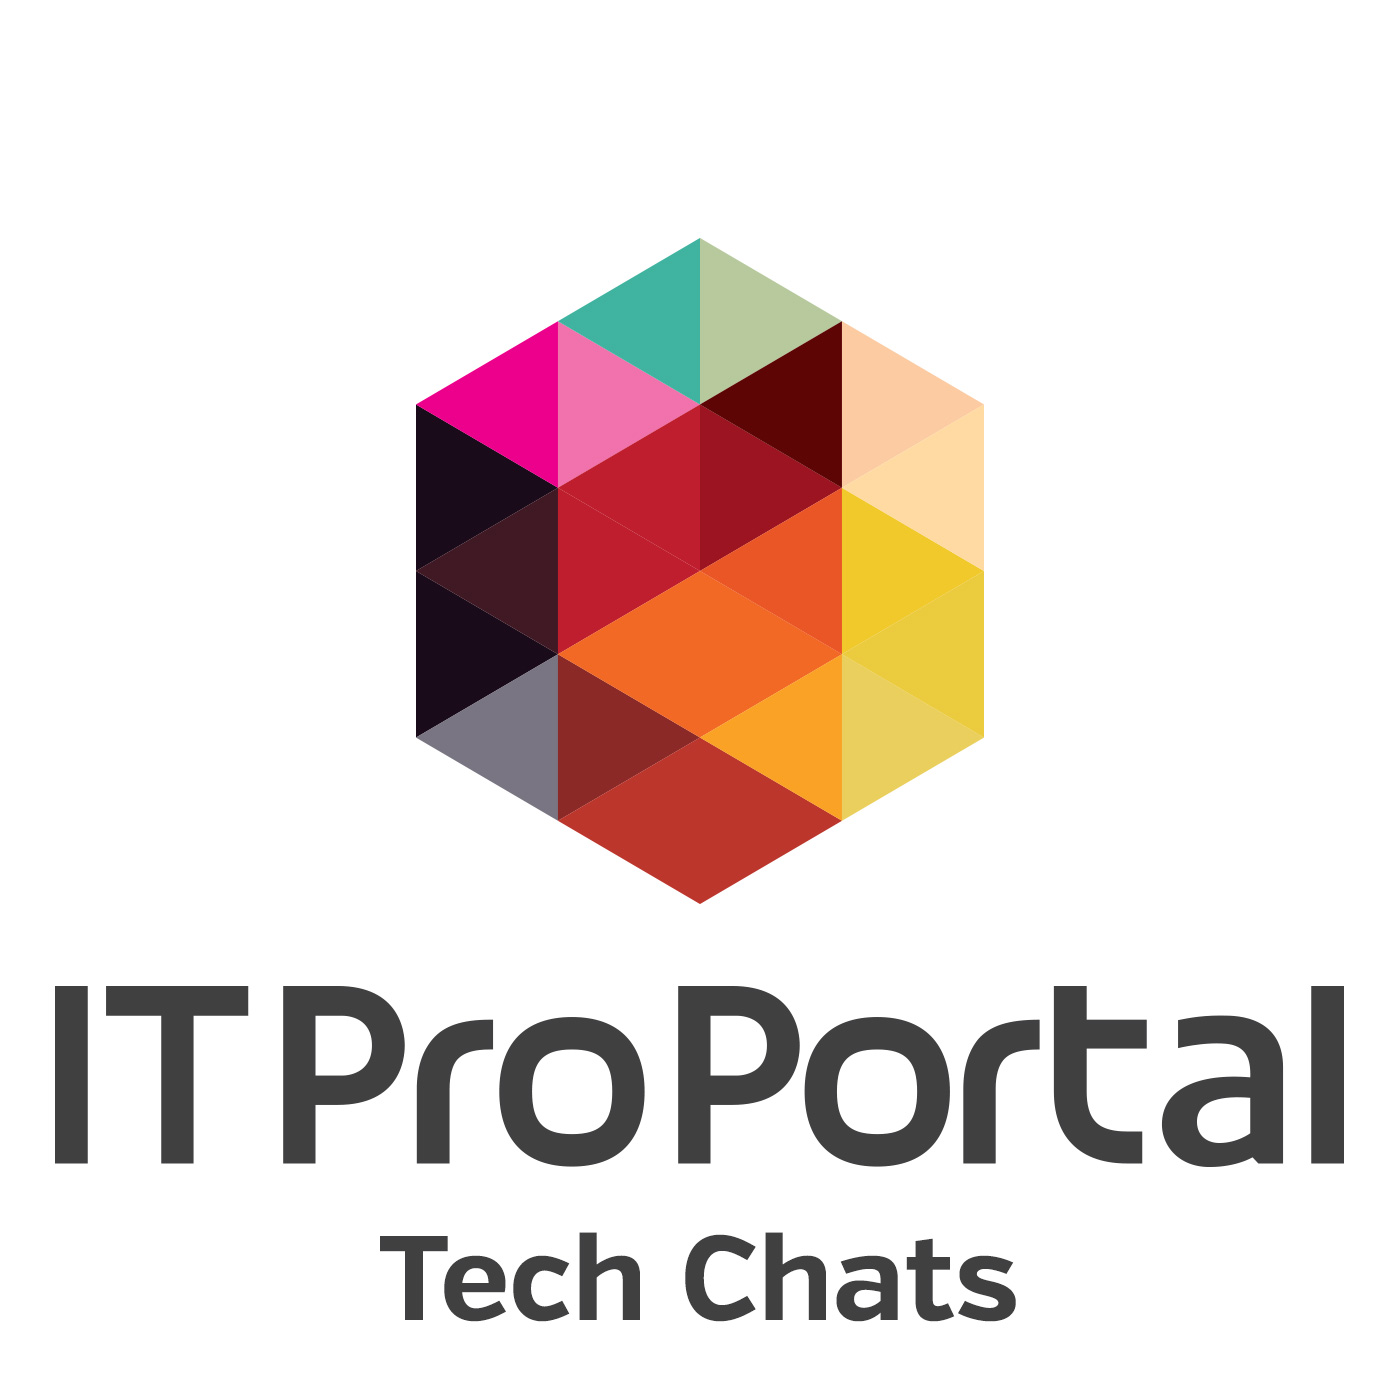 The ITProPortal Podcast